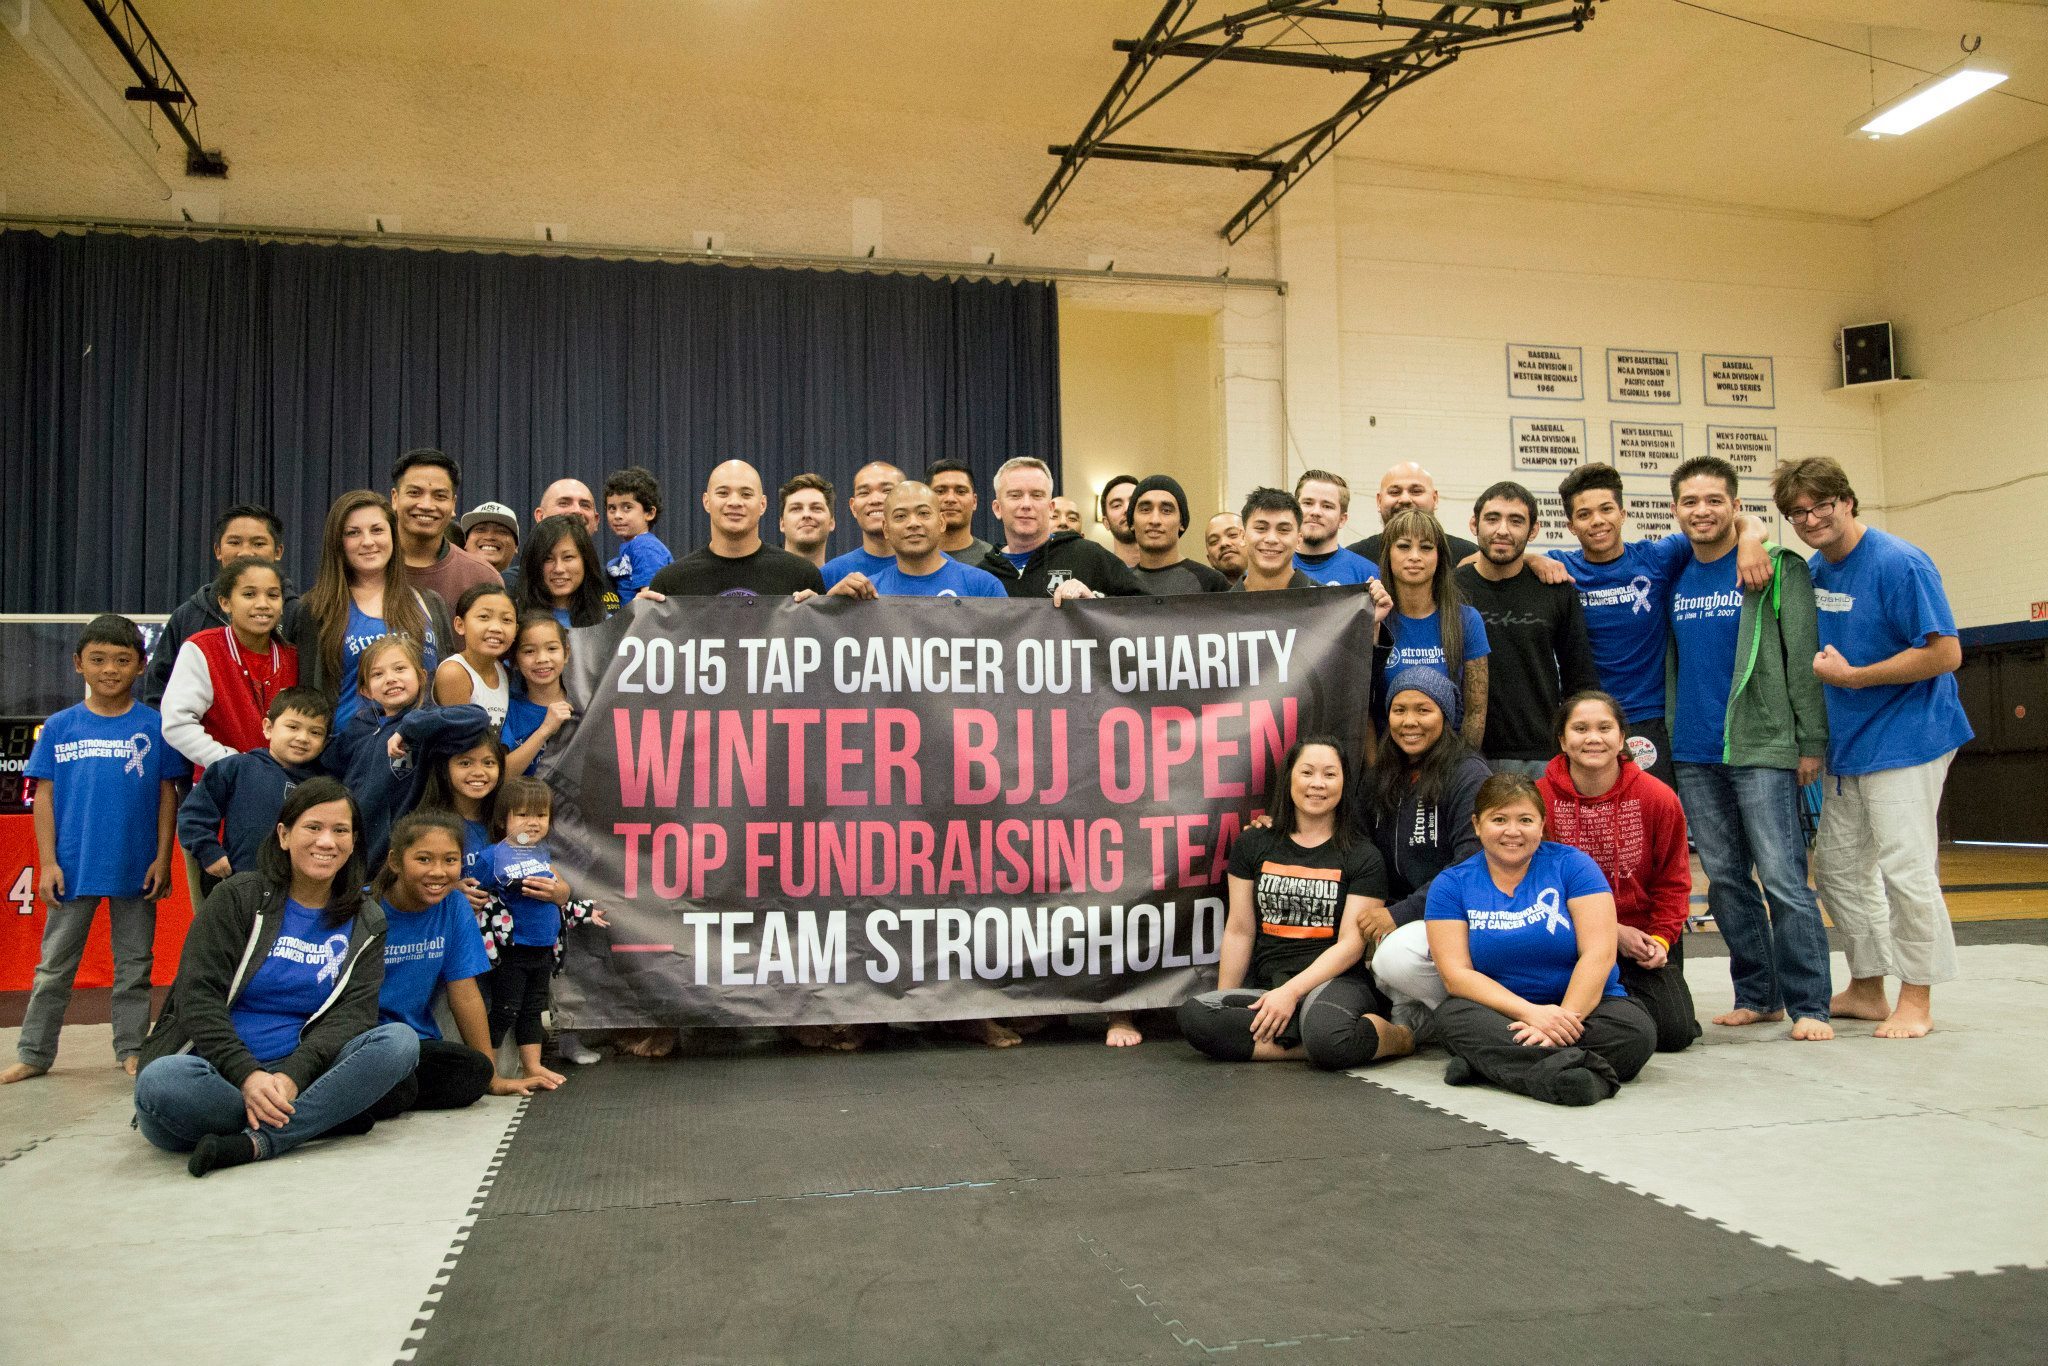 The Stronghold awarded top fundraising team. Photo: Tap Cancer Out